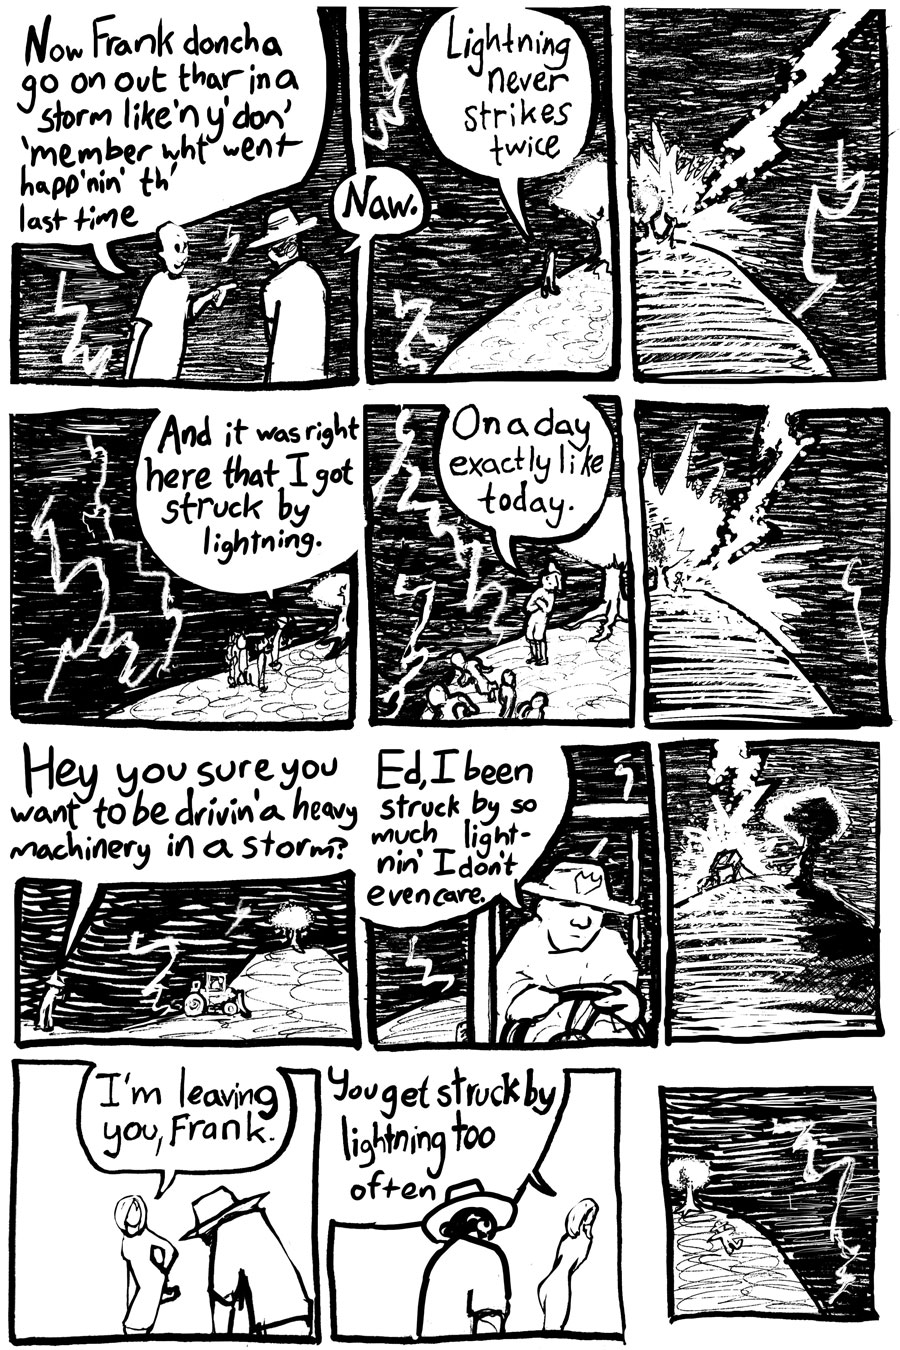 How I Got Struck By Lightning Several Times Page Three